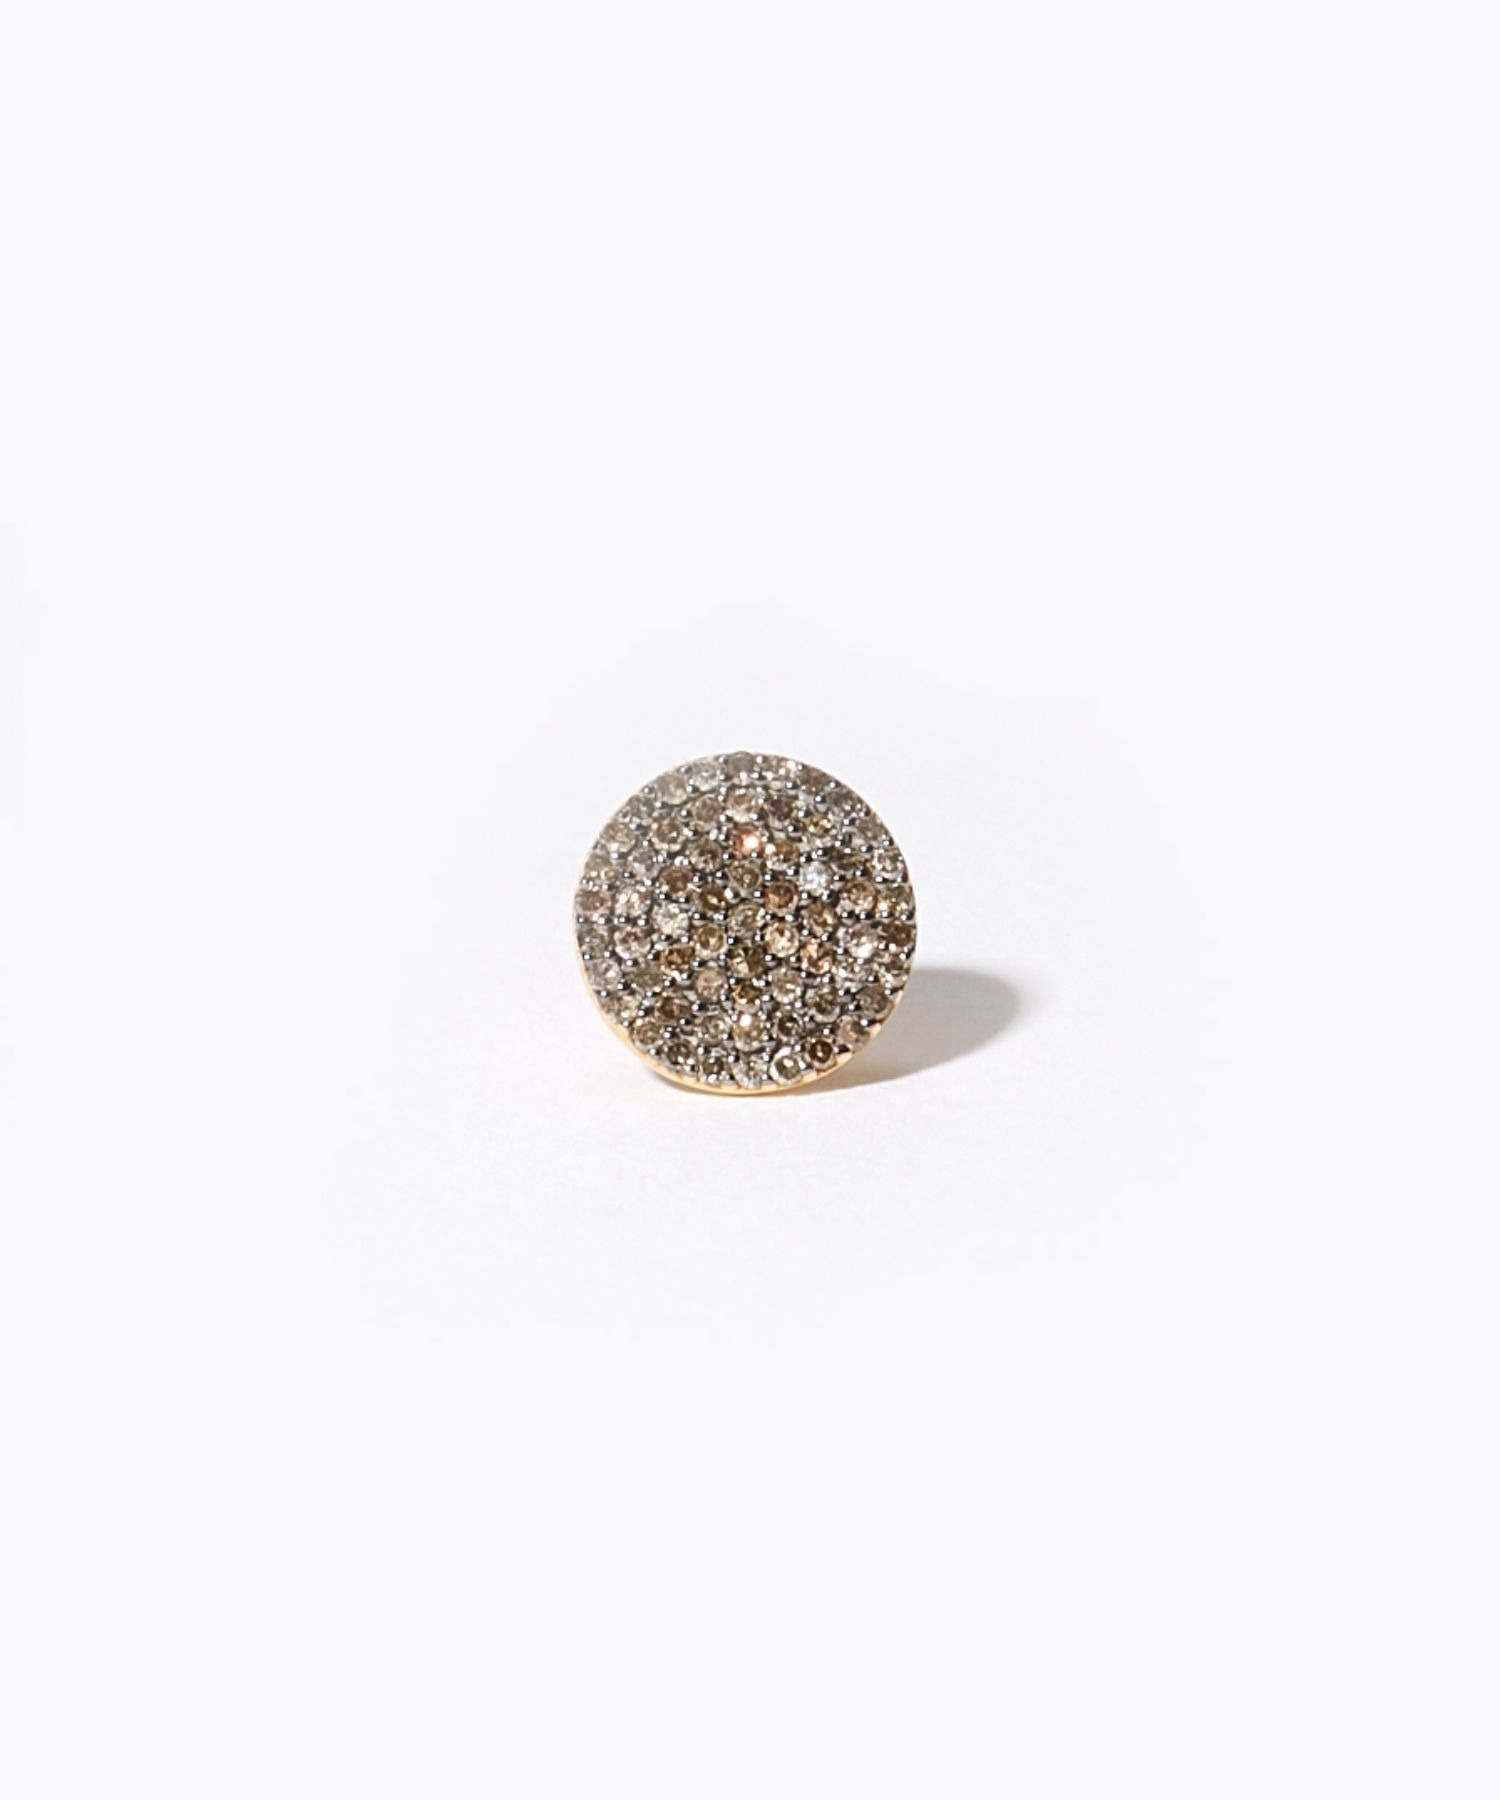 [selene] grand-disque pave diamondss stud pierced earring